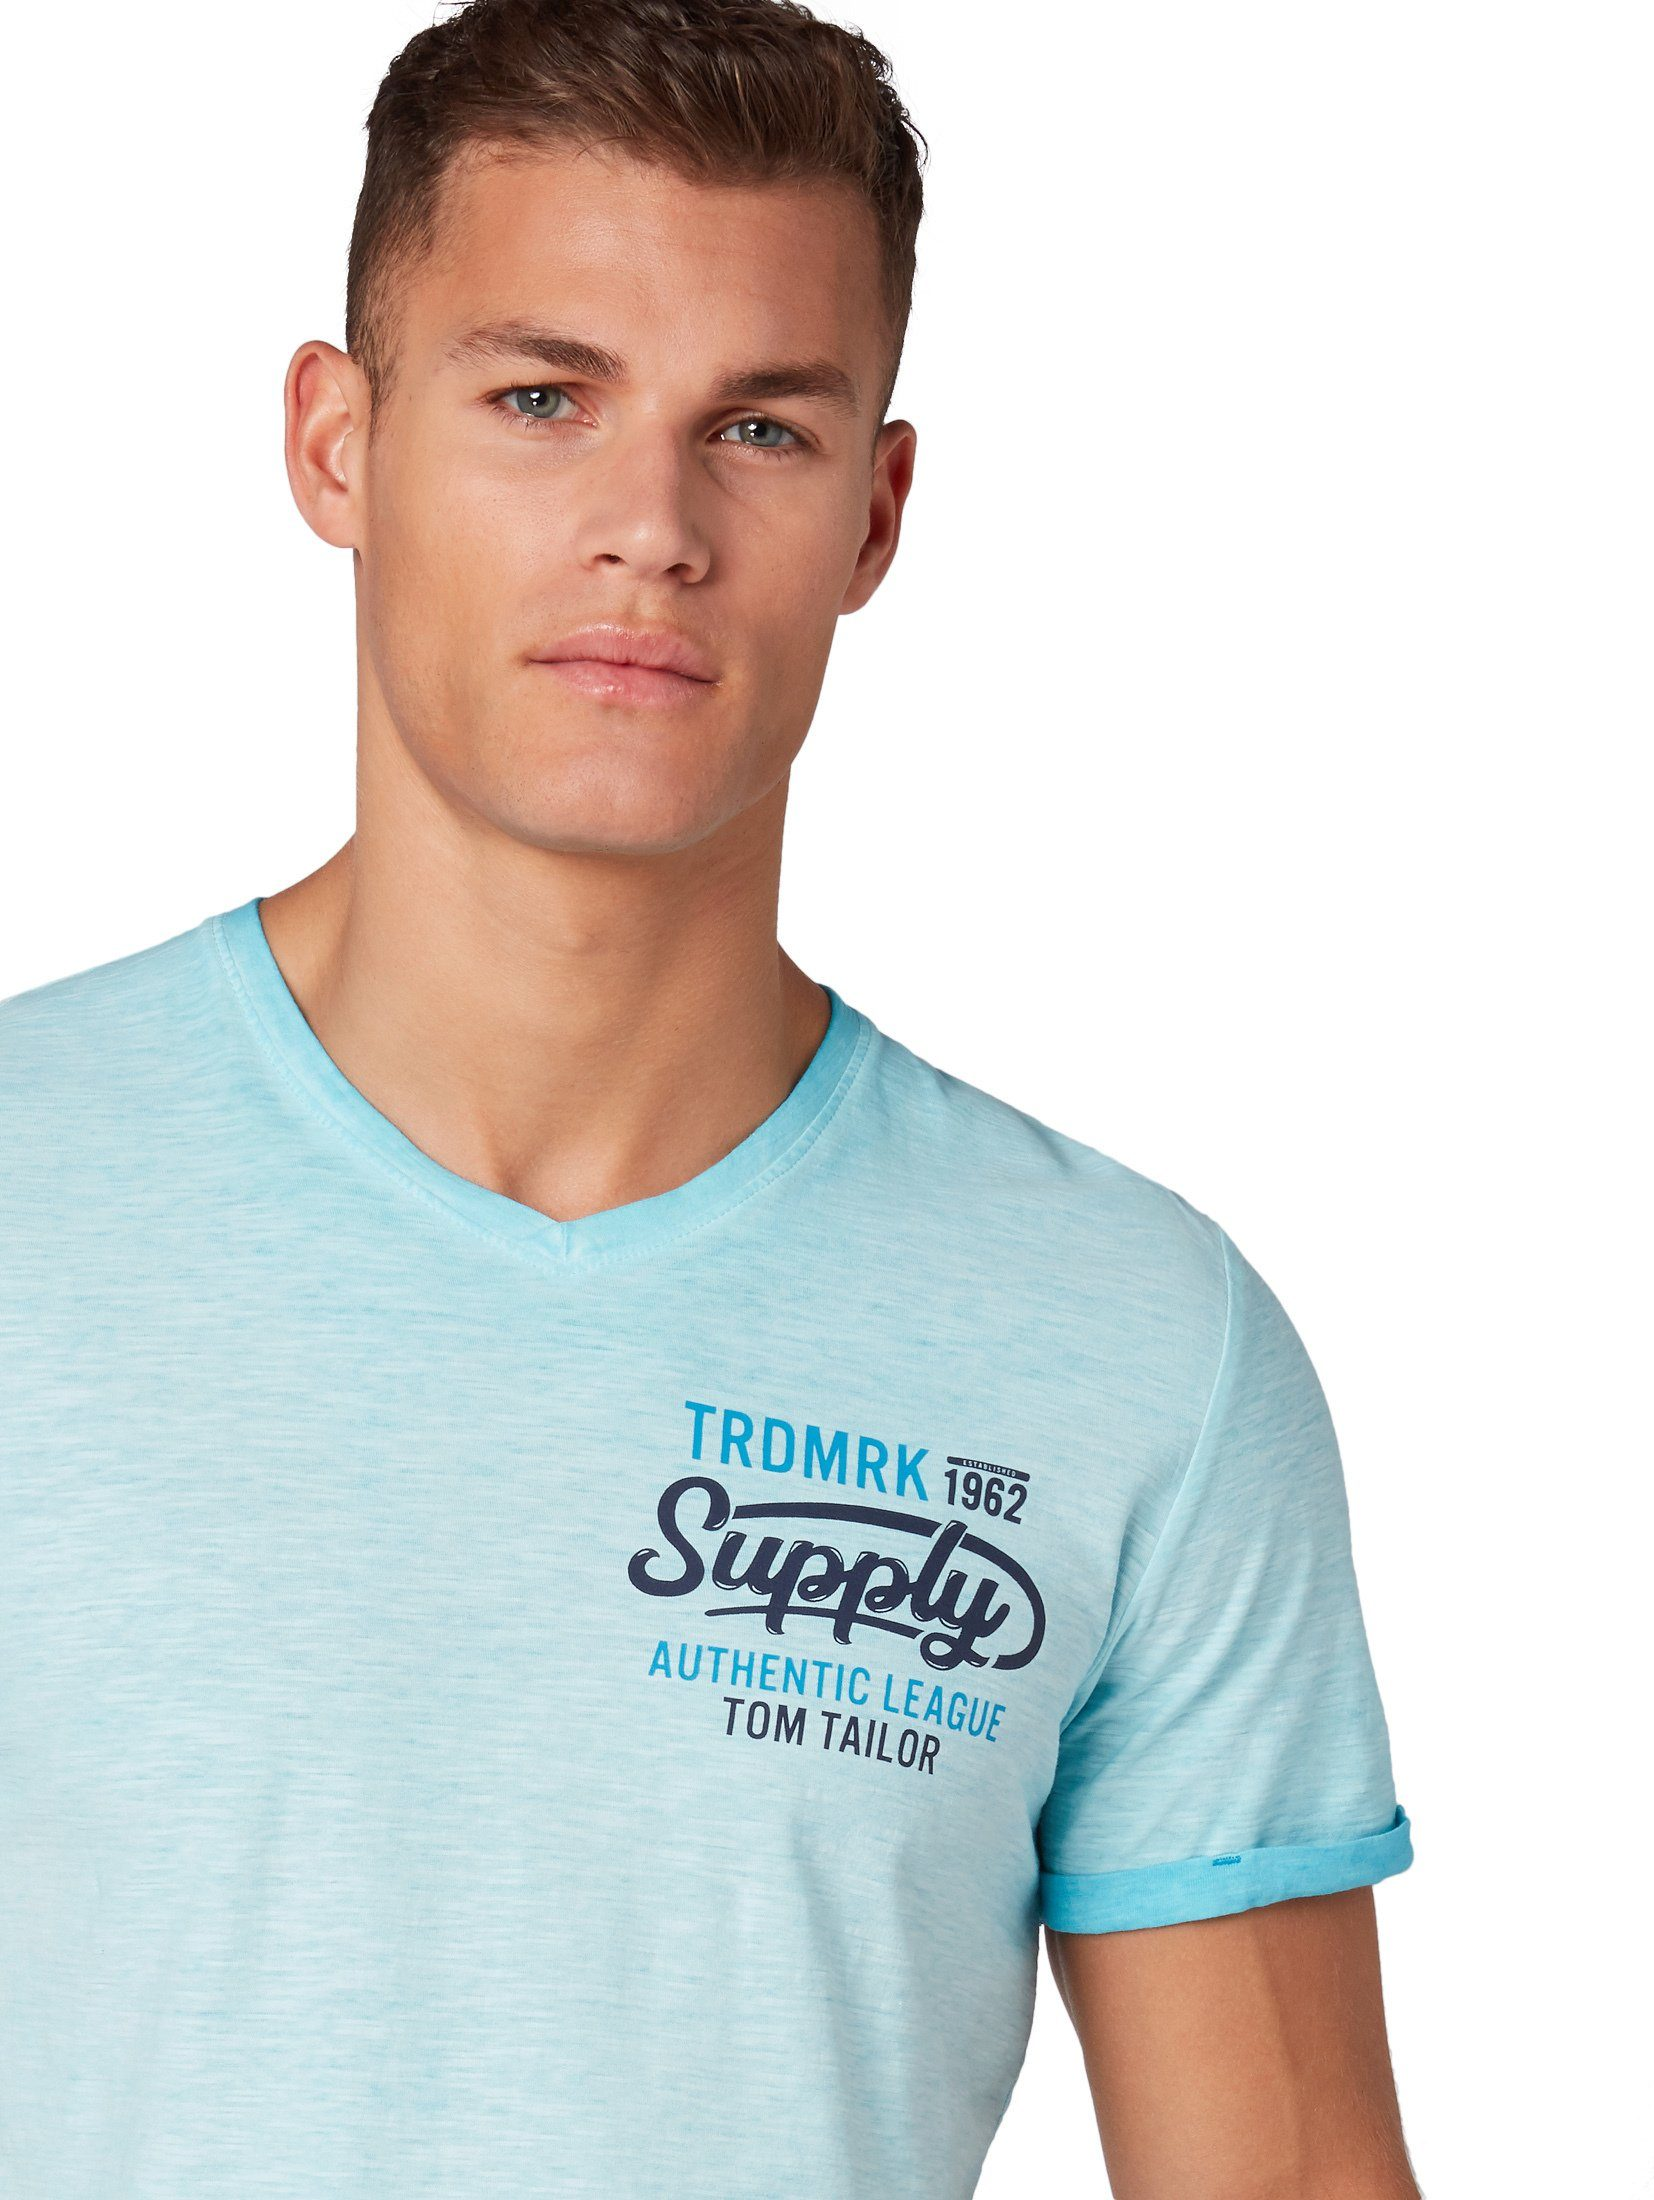 shirt« »meliertes Tailor Tom T Kaufen T shirt be29WEDHIY